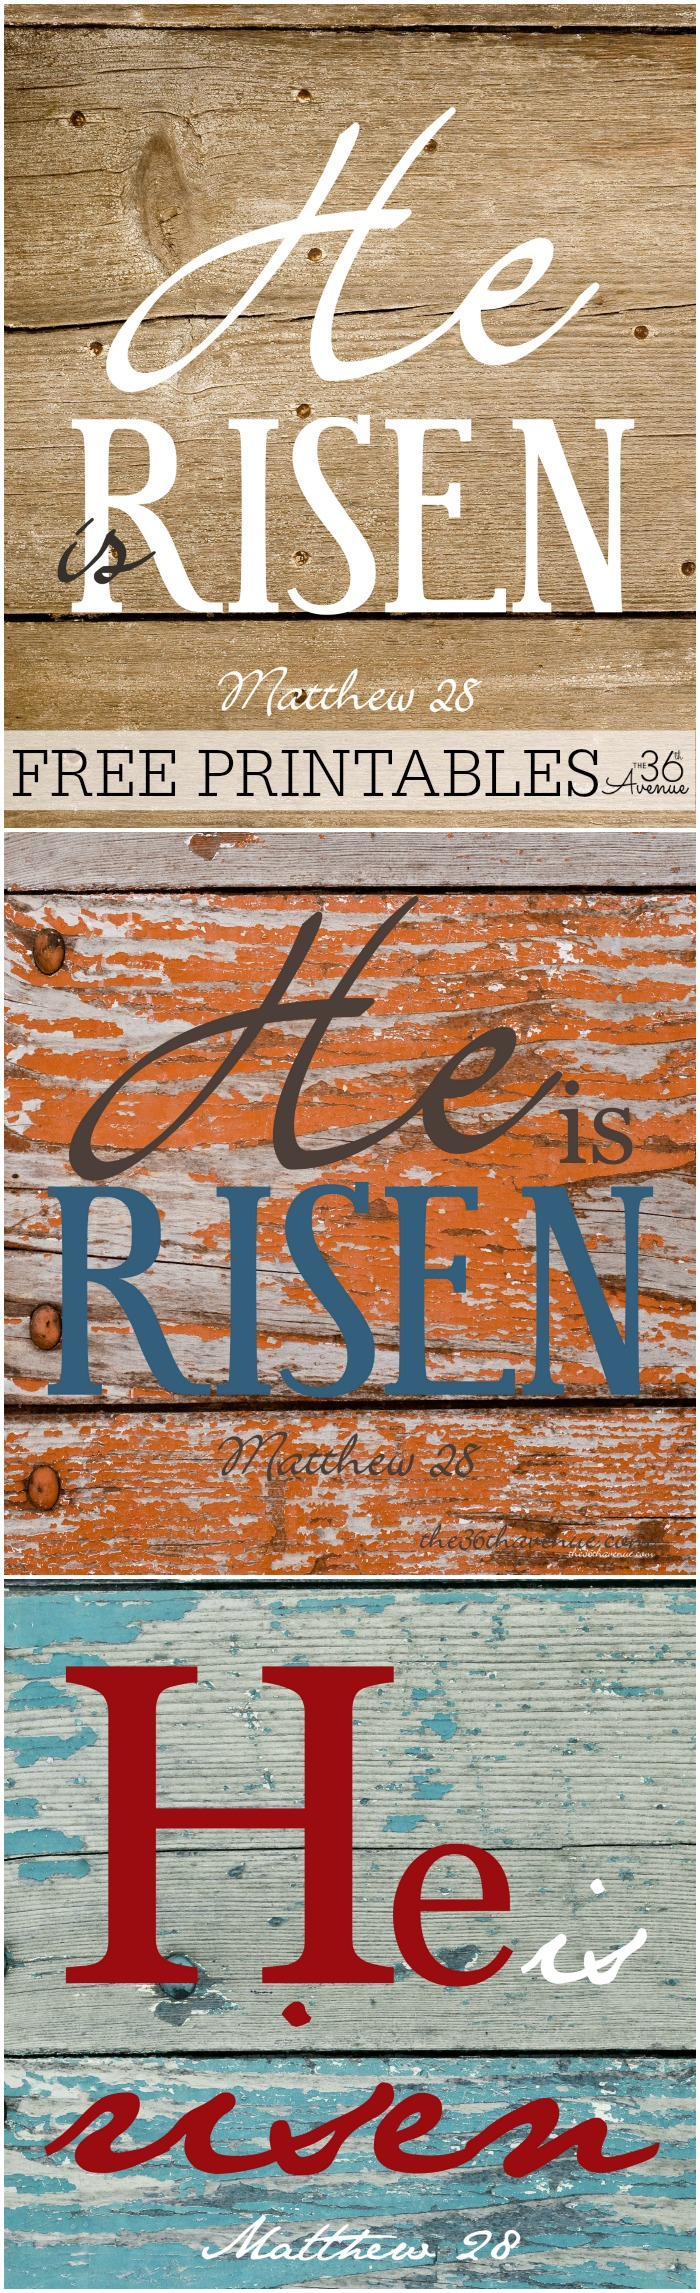 Free Printables - Easter He Is Risen at the36thavenue.com